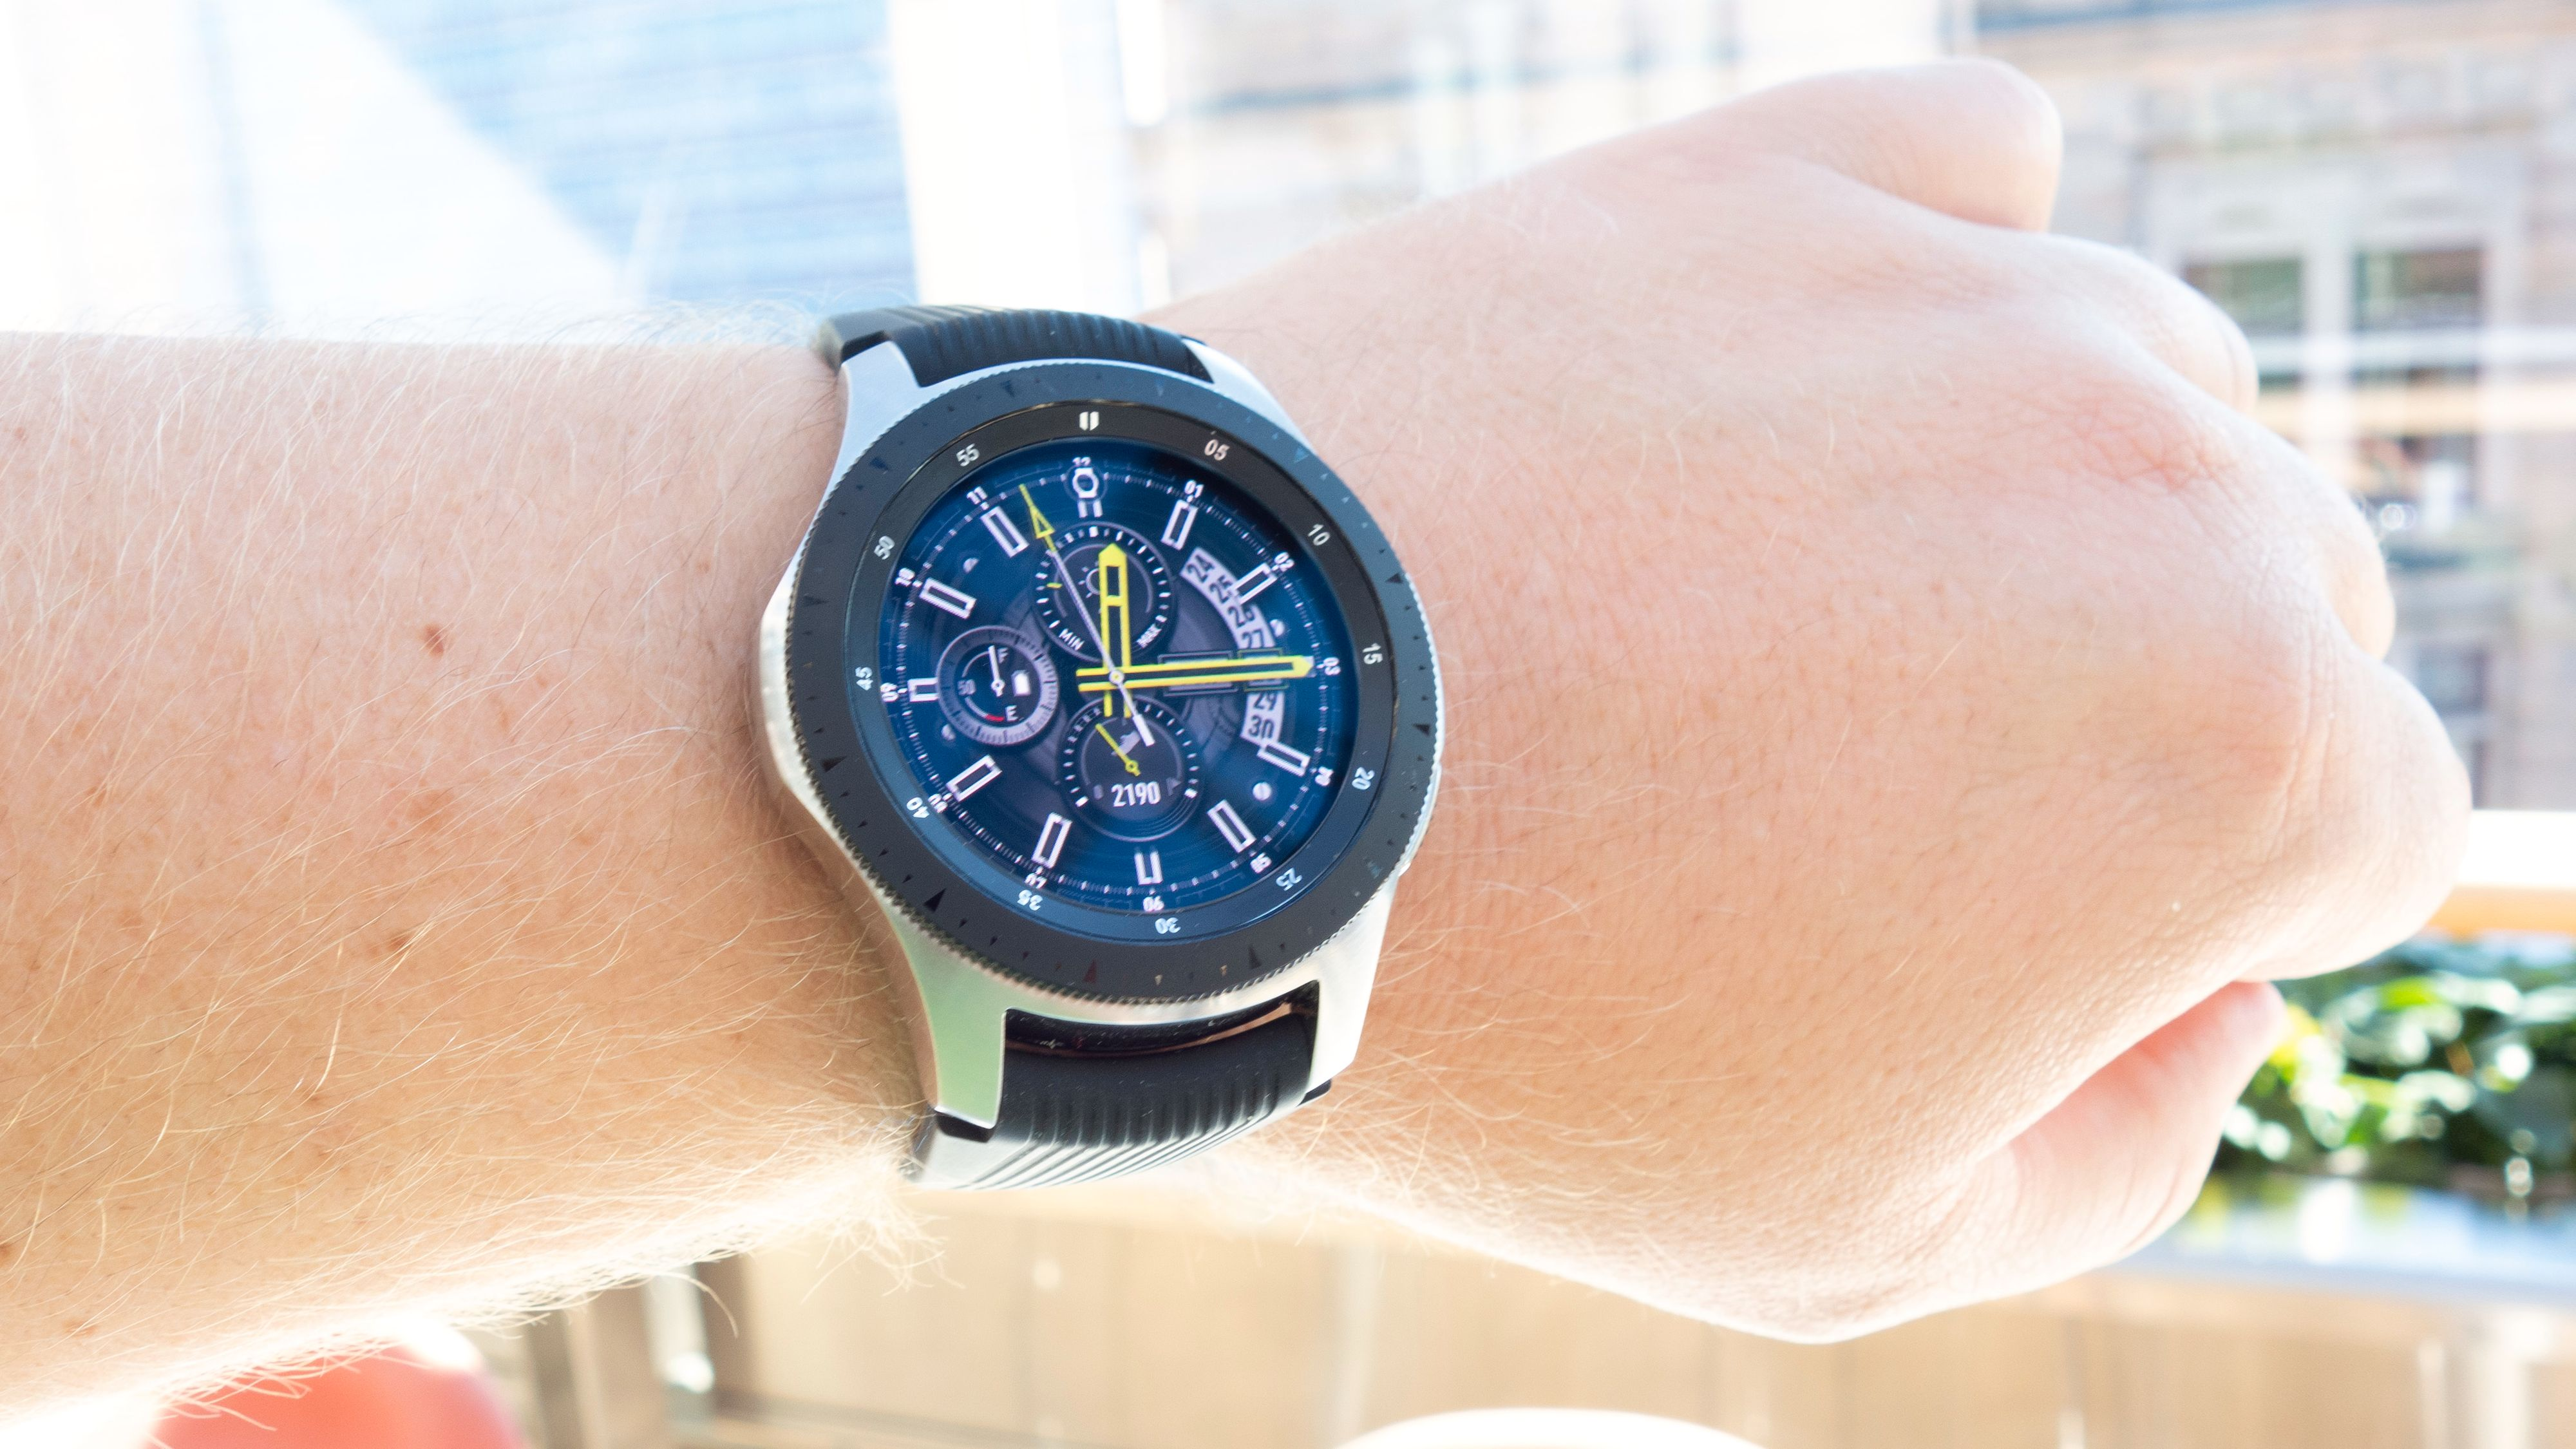 Test av Samsung Galaxy Watch Samsungs smartklokke kan mye